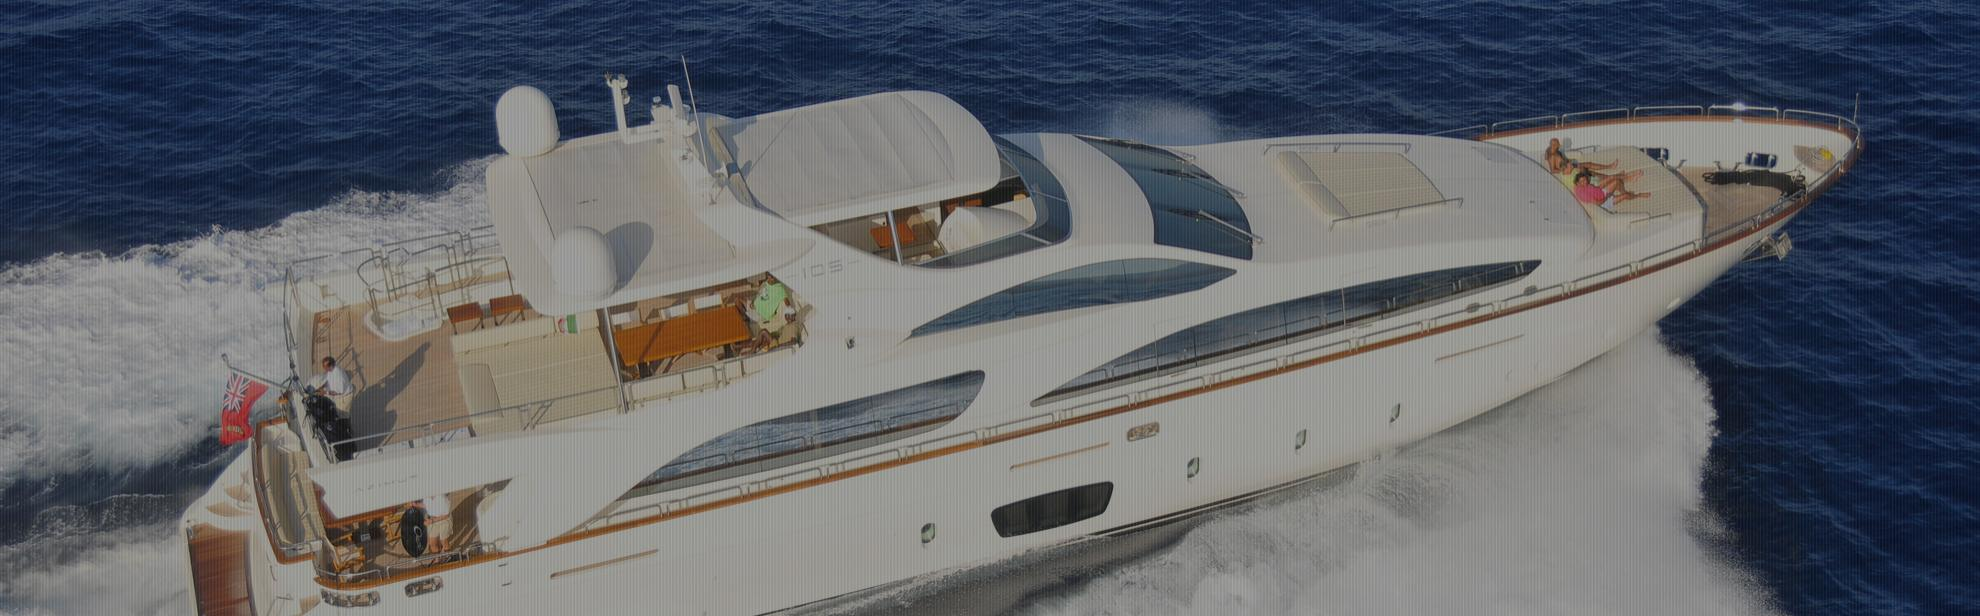 rti_showcase_header---azimut.jpg